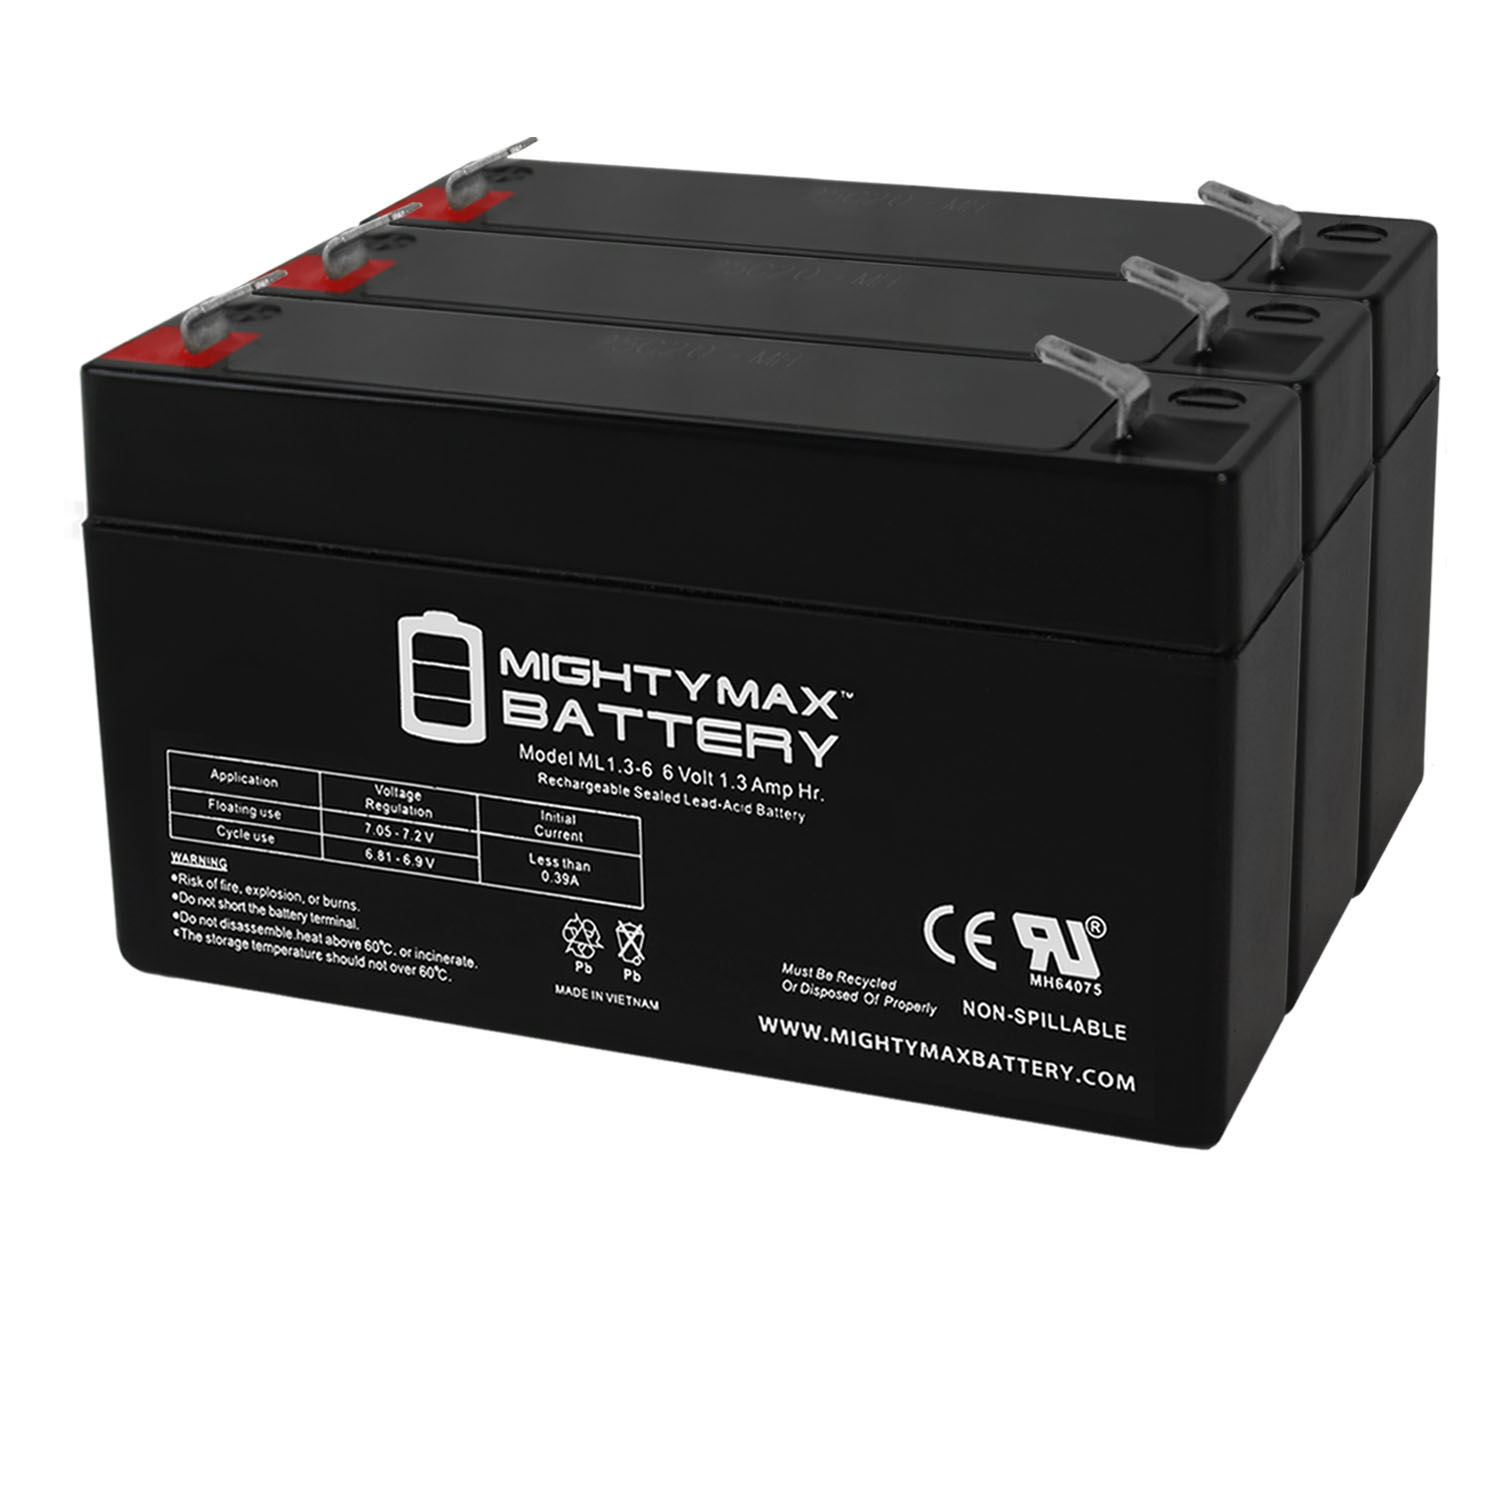 6V 1.3Ah Replacement for MK ES1.2-6 Wheelchair Battery - 3 Pack